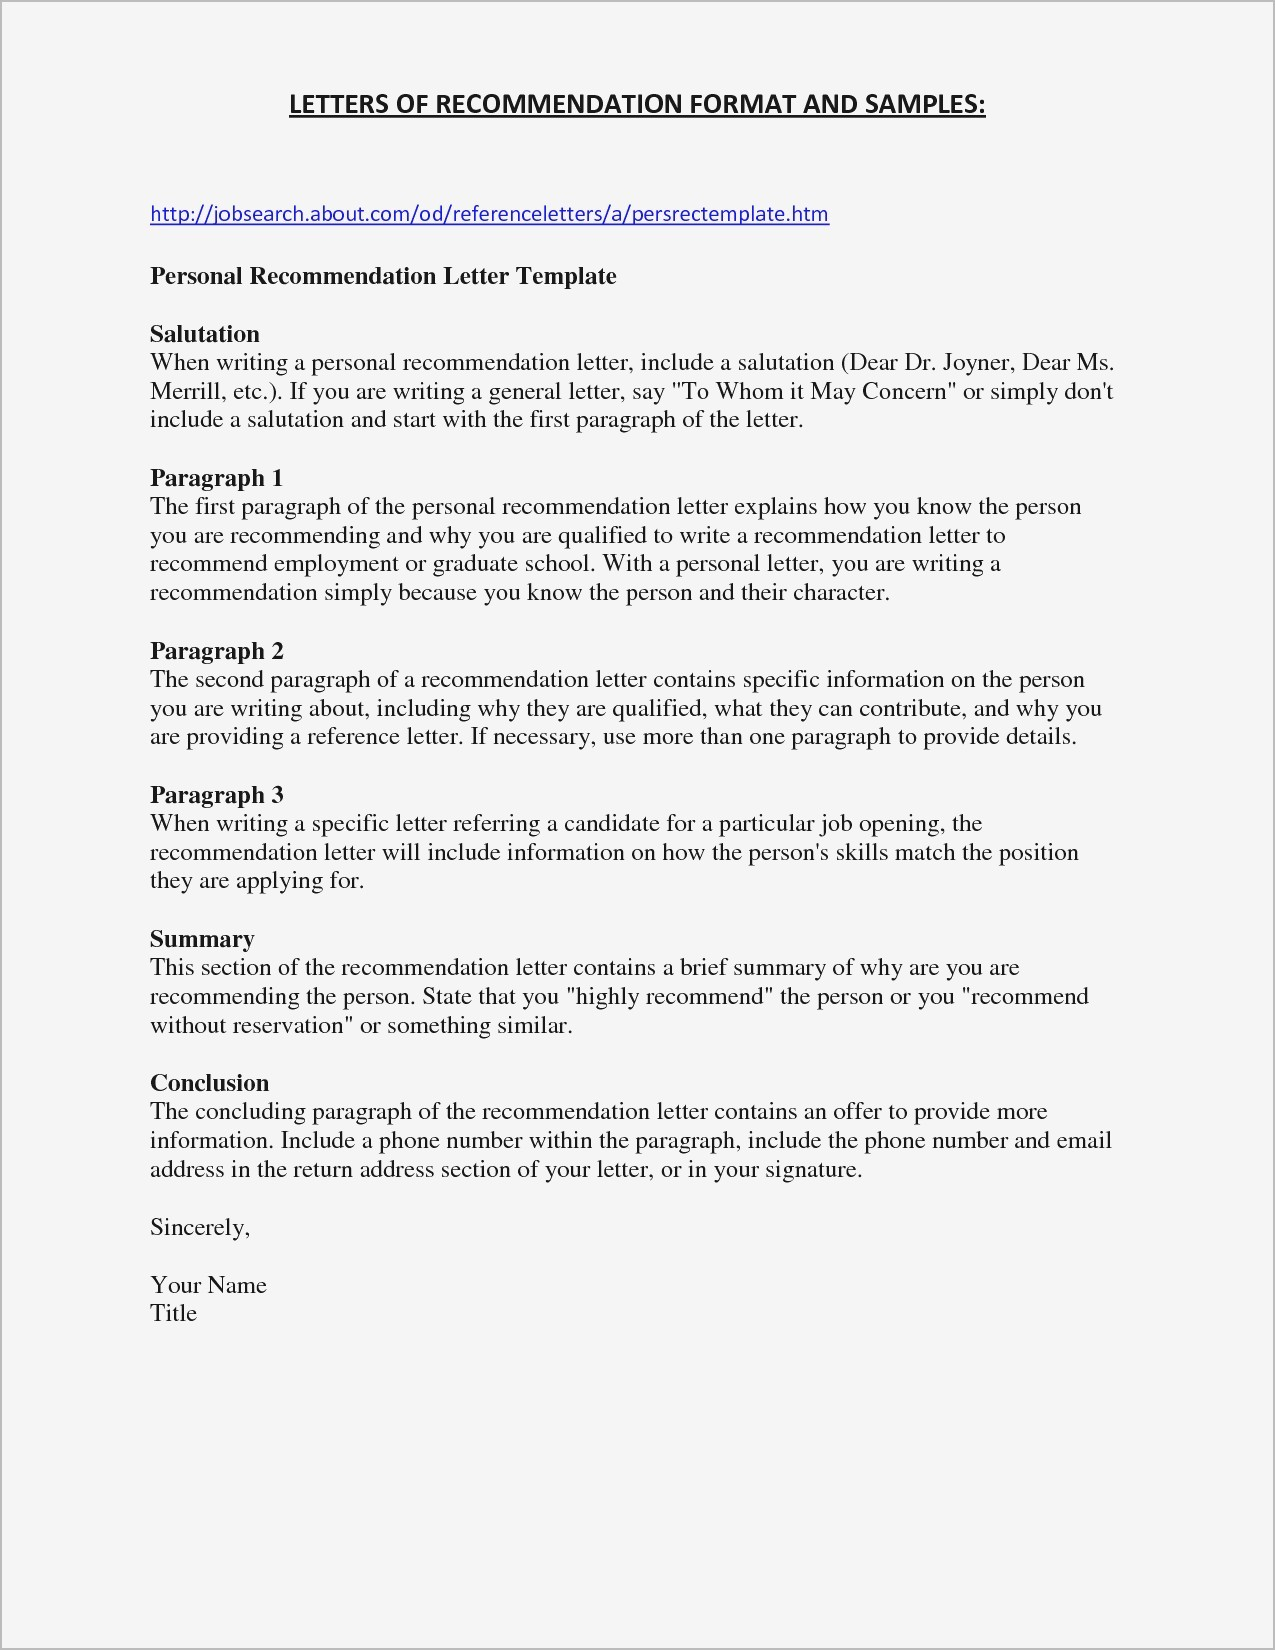 Personal Reference Letter for A Friend Template - Personal Reference Letter for Job Valid Sample Personal Reference